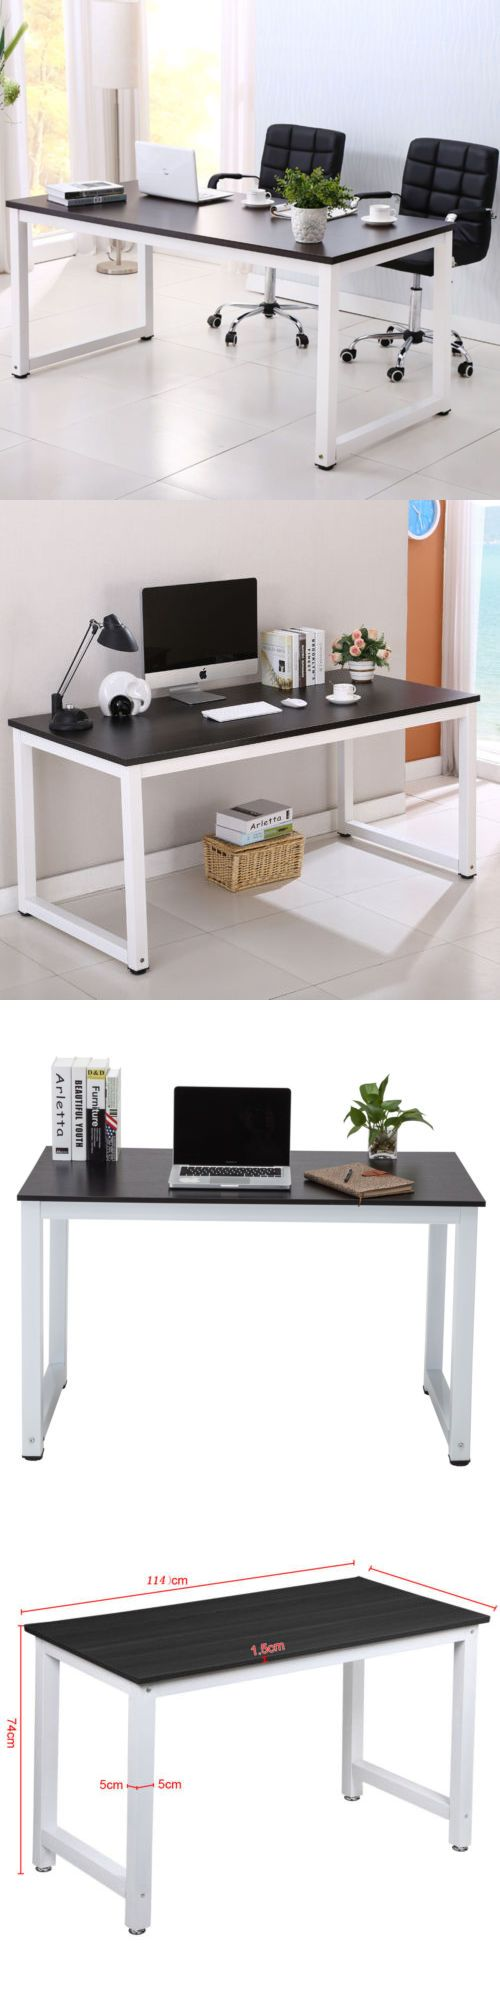 Vittsjo laptop table to upscale side table get home decorating - Office Furniture Computer Desk Pc Laptop Table Workstation Study Work Table Home Office Furniture